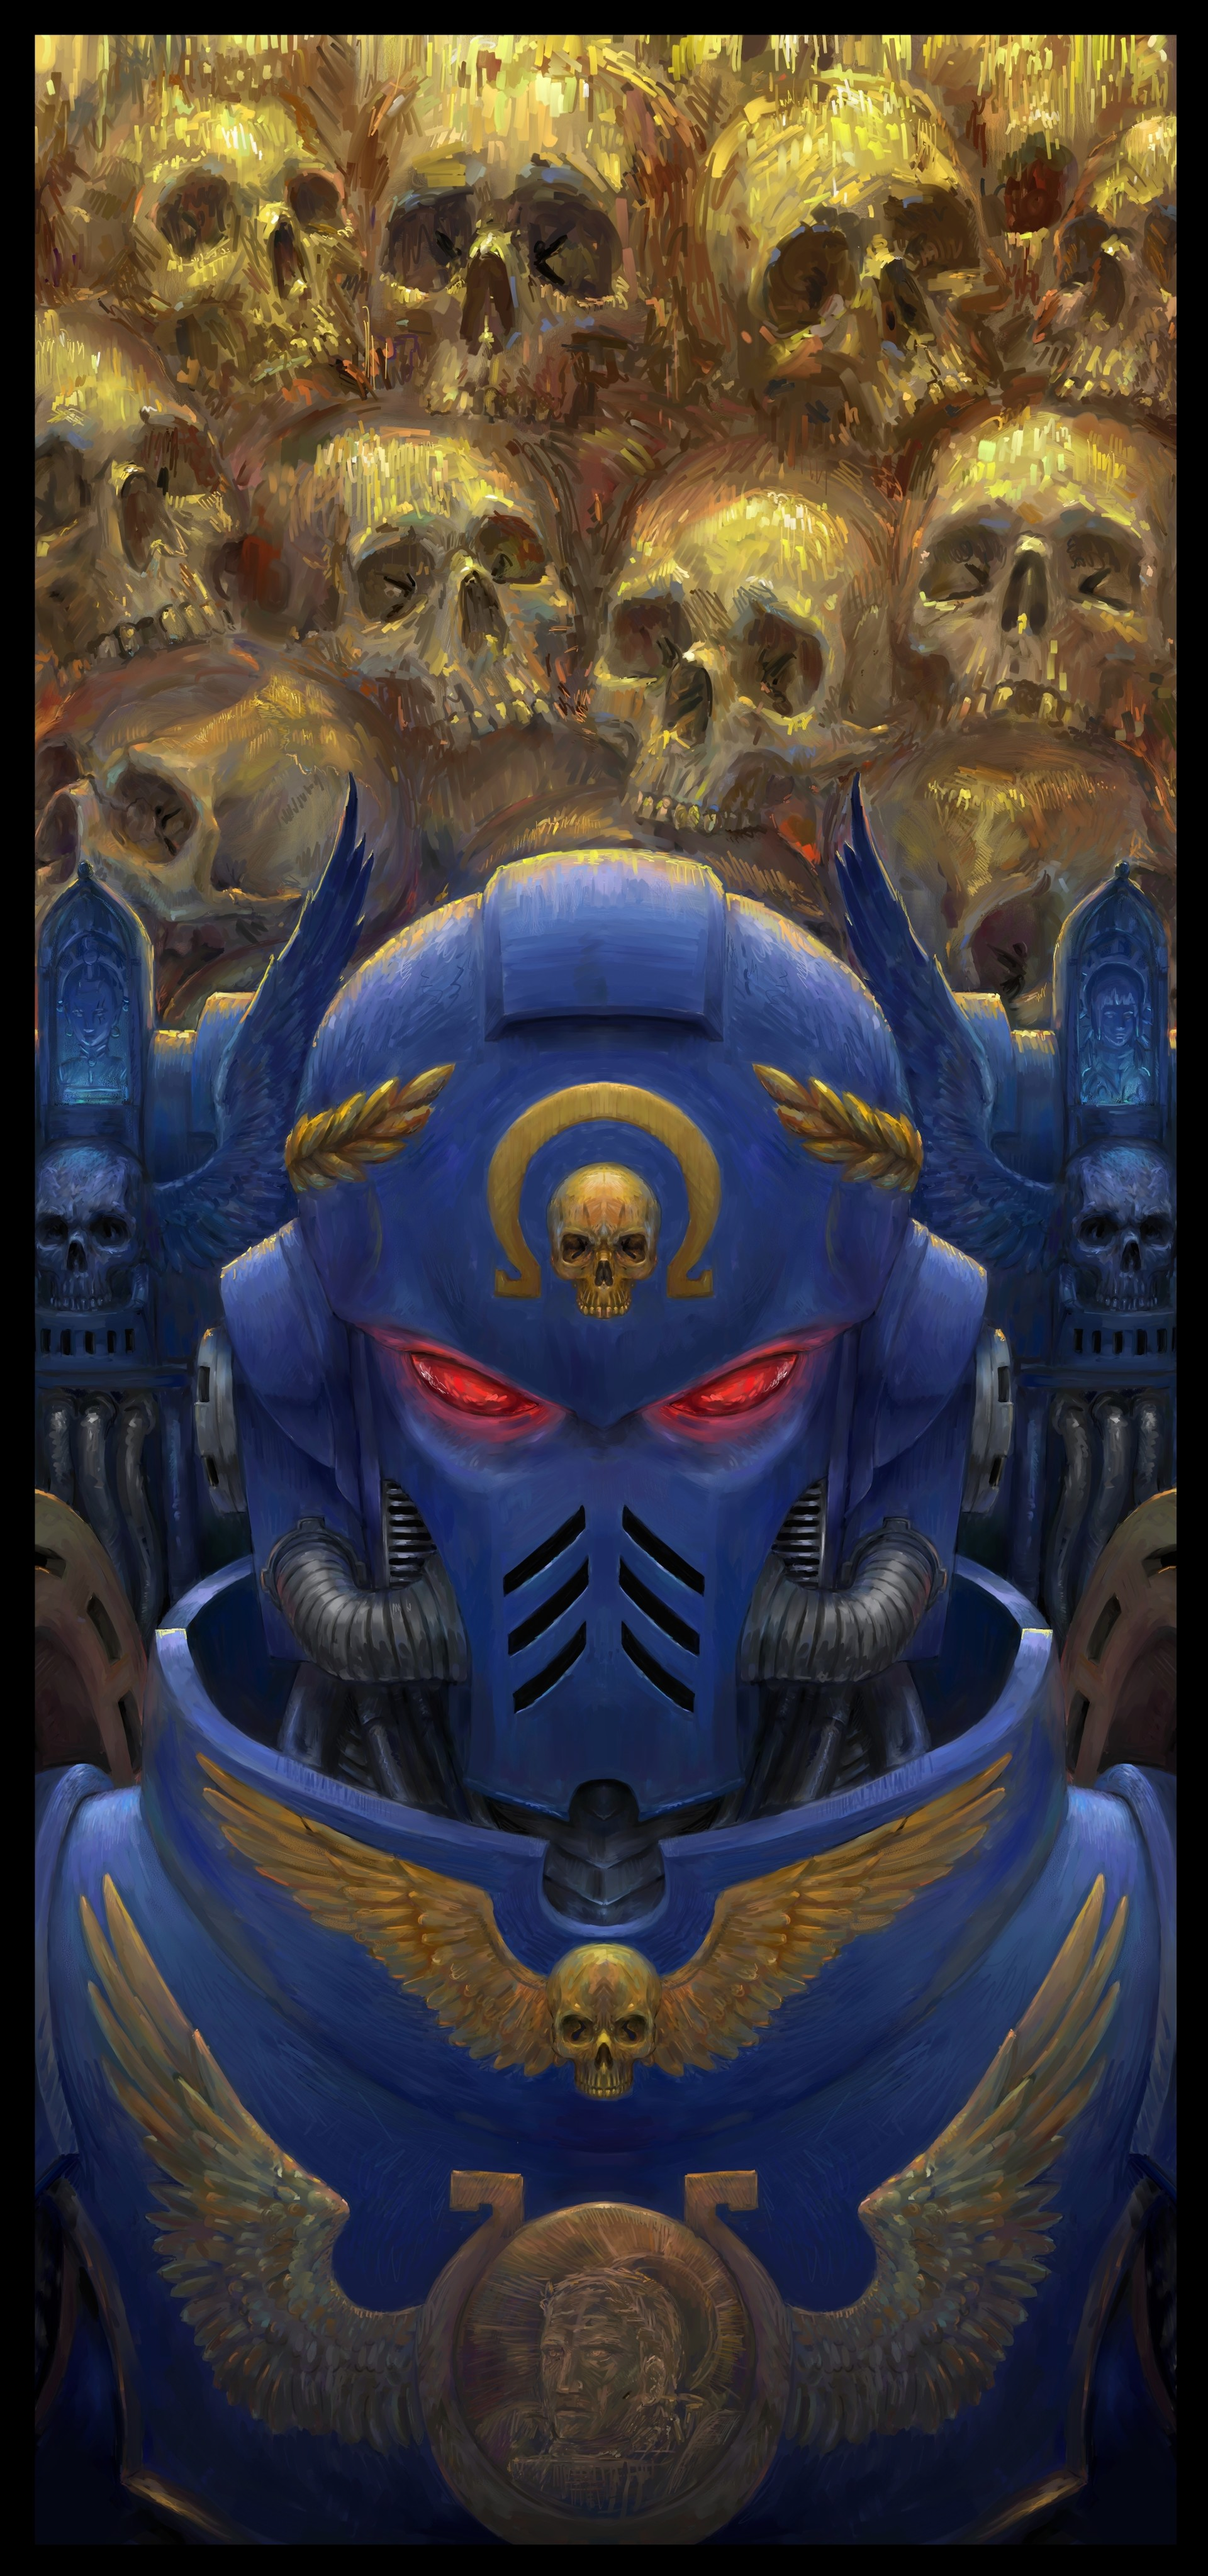 [W40K] Collection d'images : Space Marines - Page 21 Varadi-paszkal-smurf